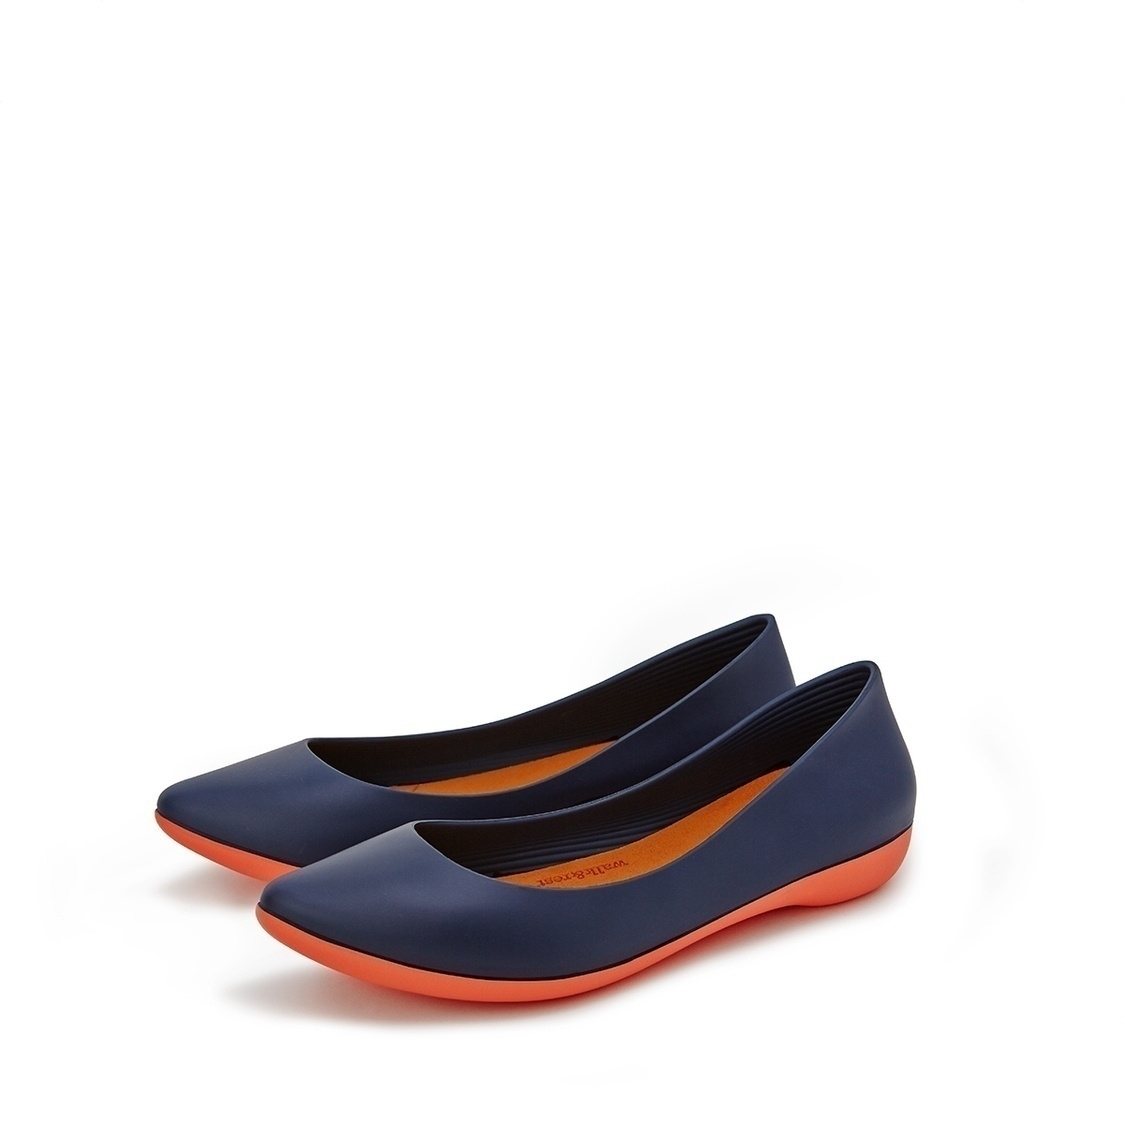 F2 Flat-Pointed Heel height 2cm Deep Navy